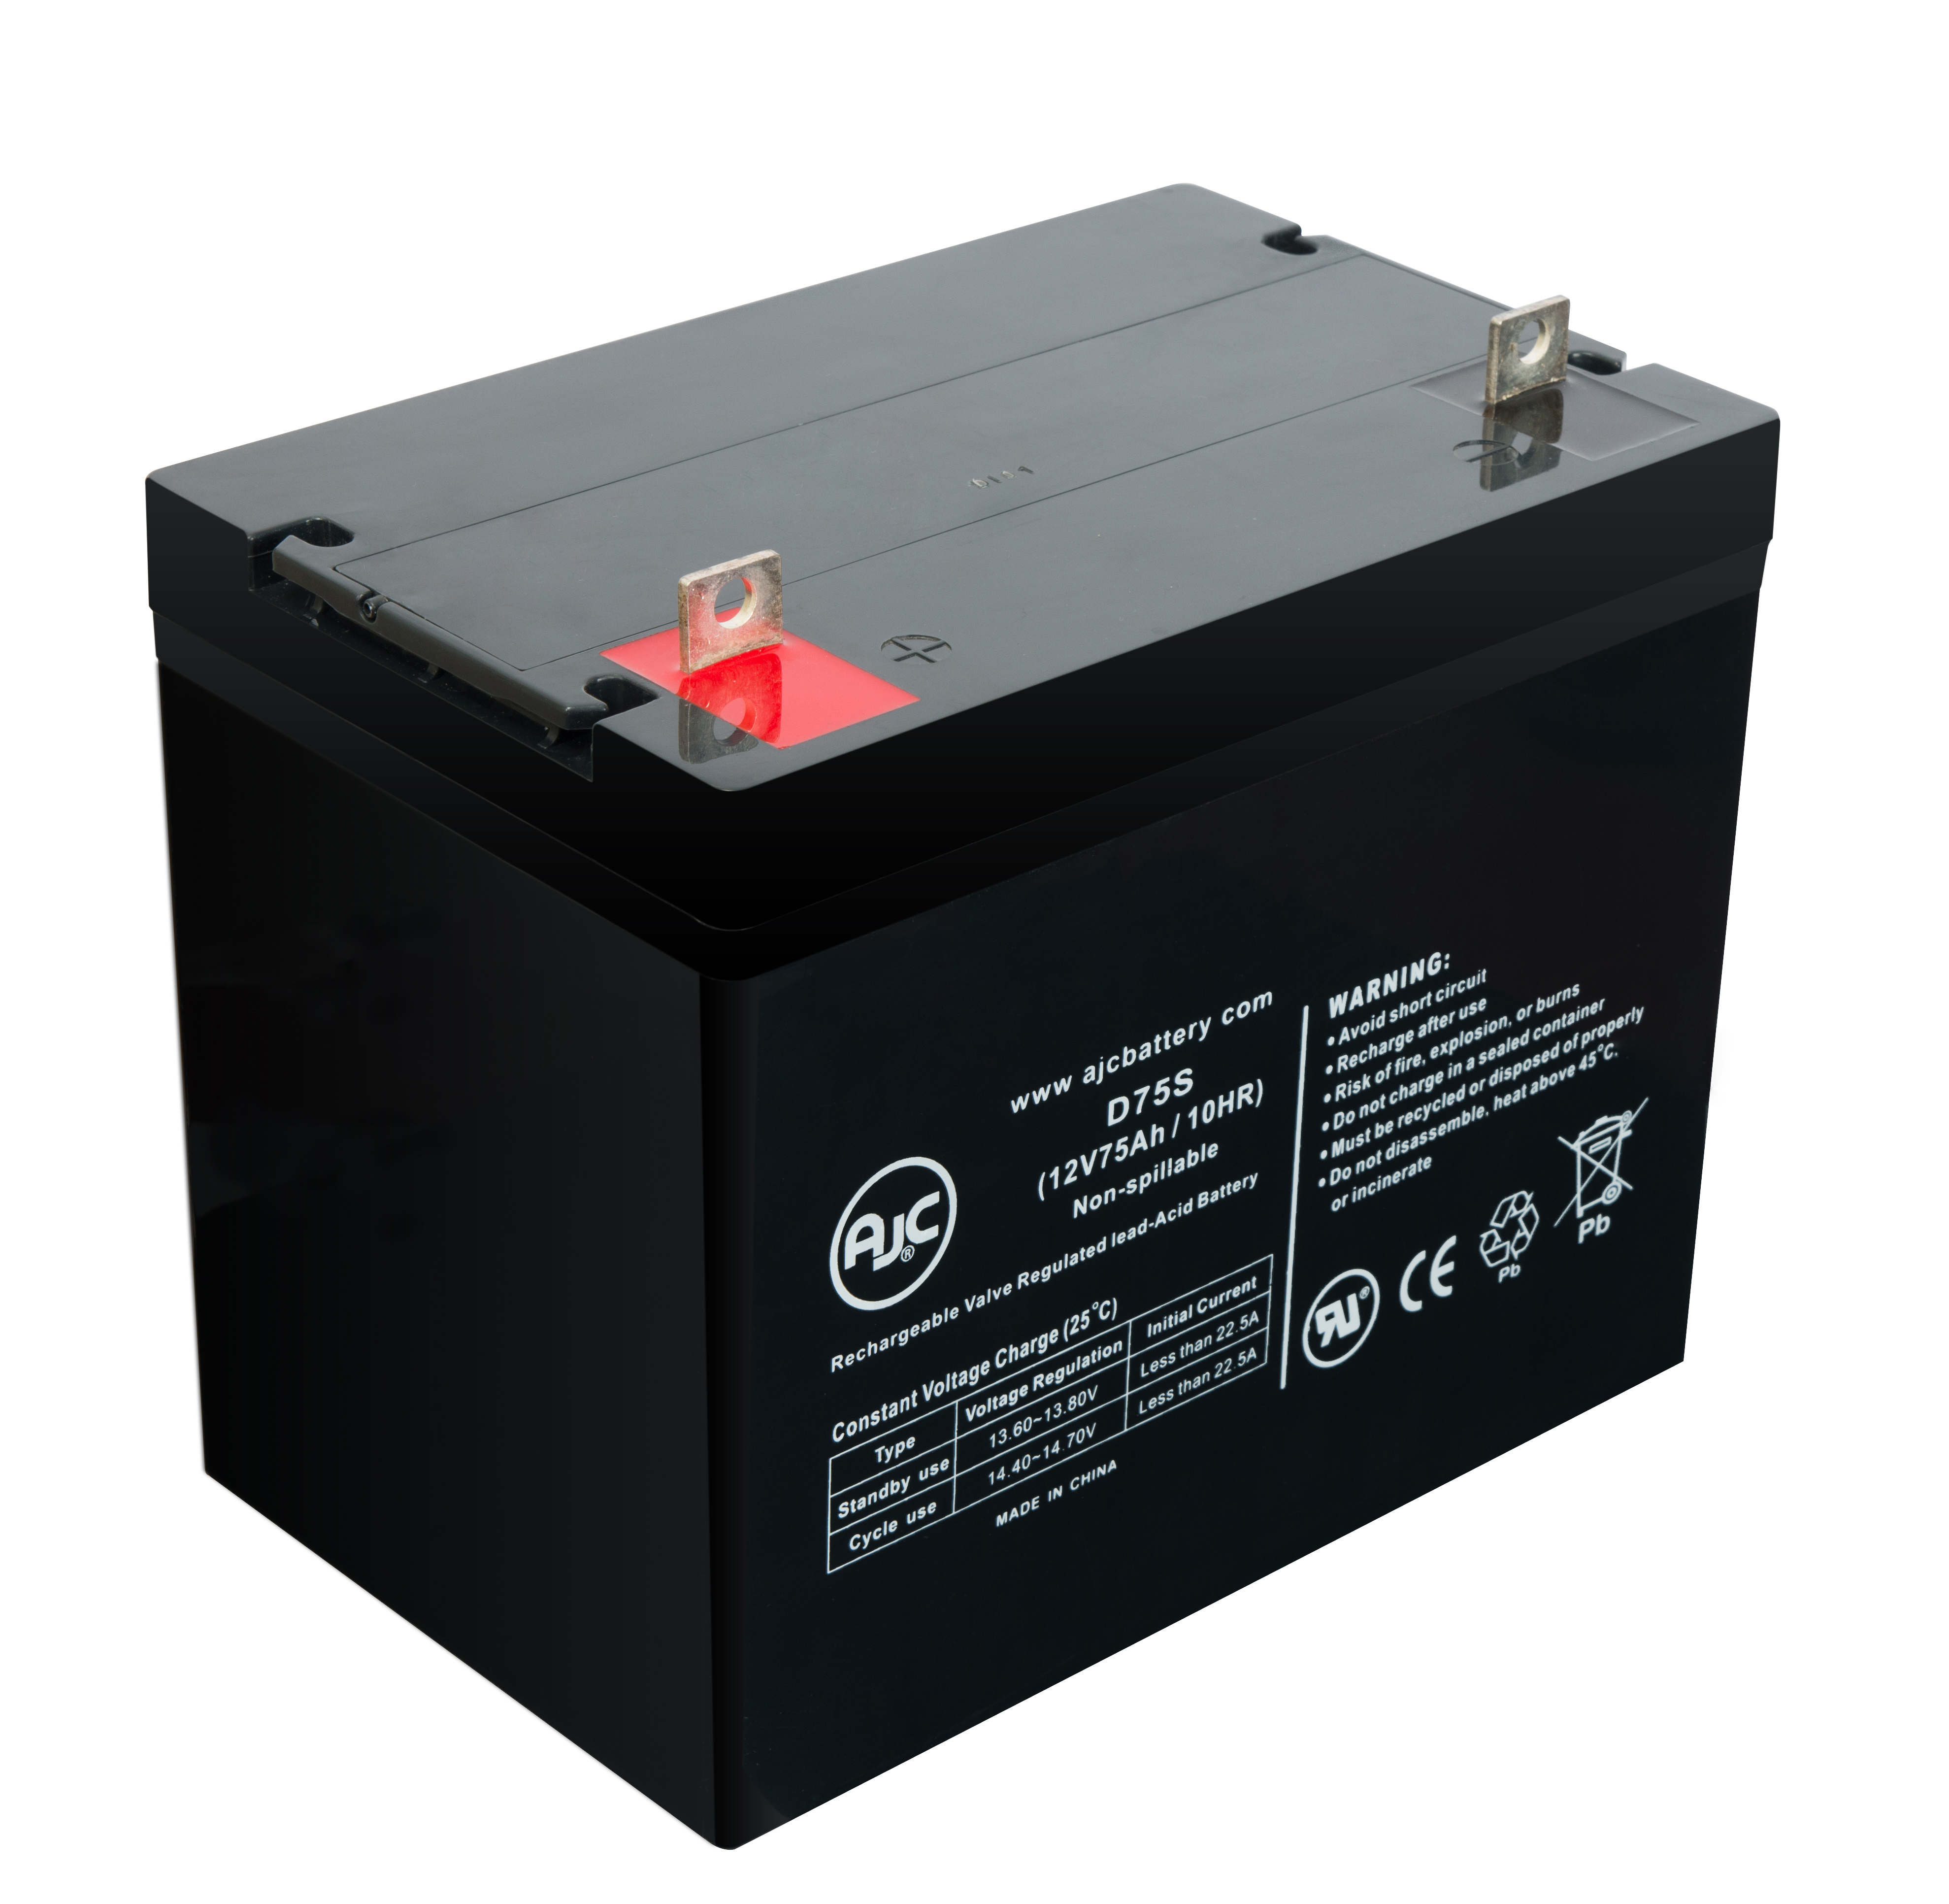 Palmer Industries Heavy Duty Power Chair GP24 AGM 12V 75Ah Battery - This is an AJC Brand® Replacement